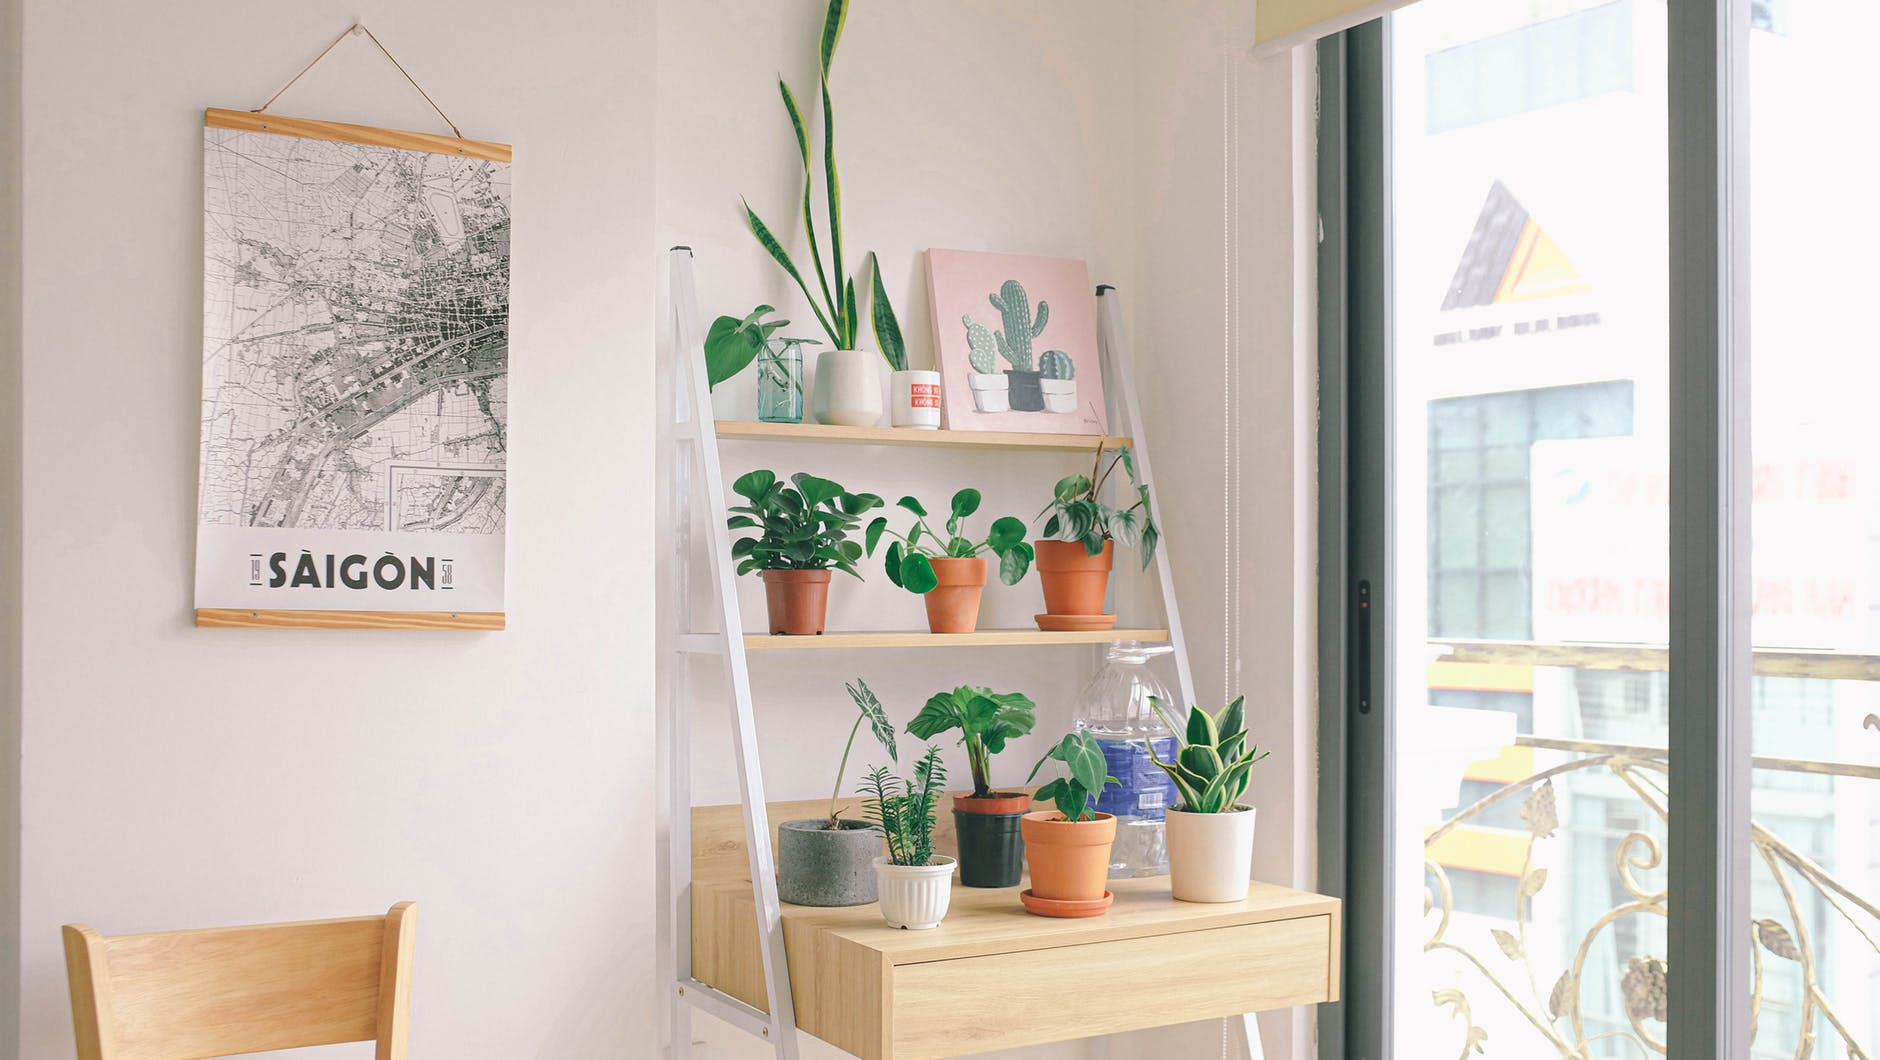 Five Low-Cost Upgrades to Give Your Home a Makeover